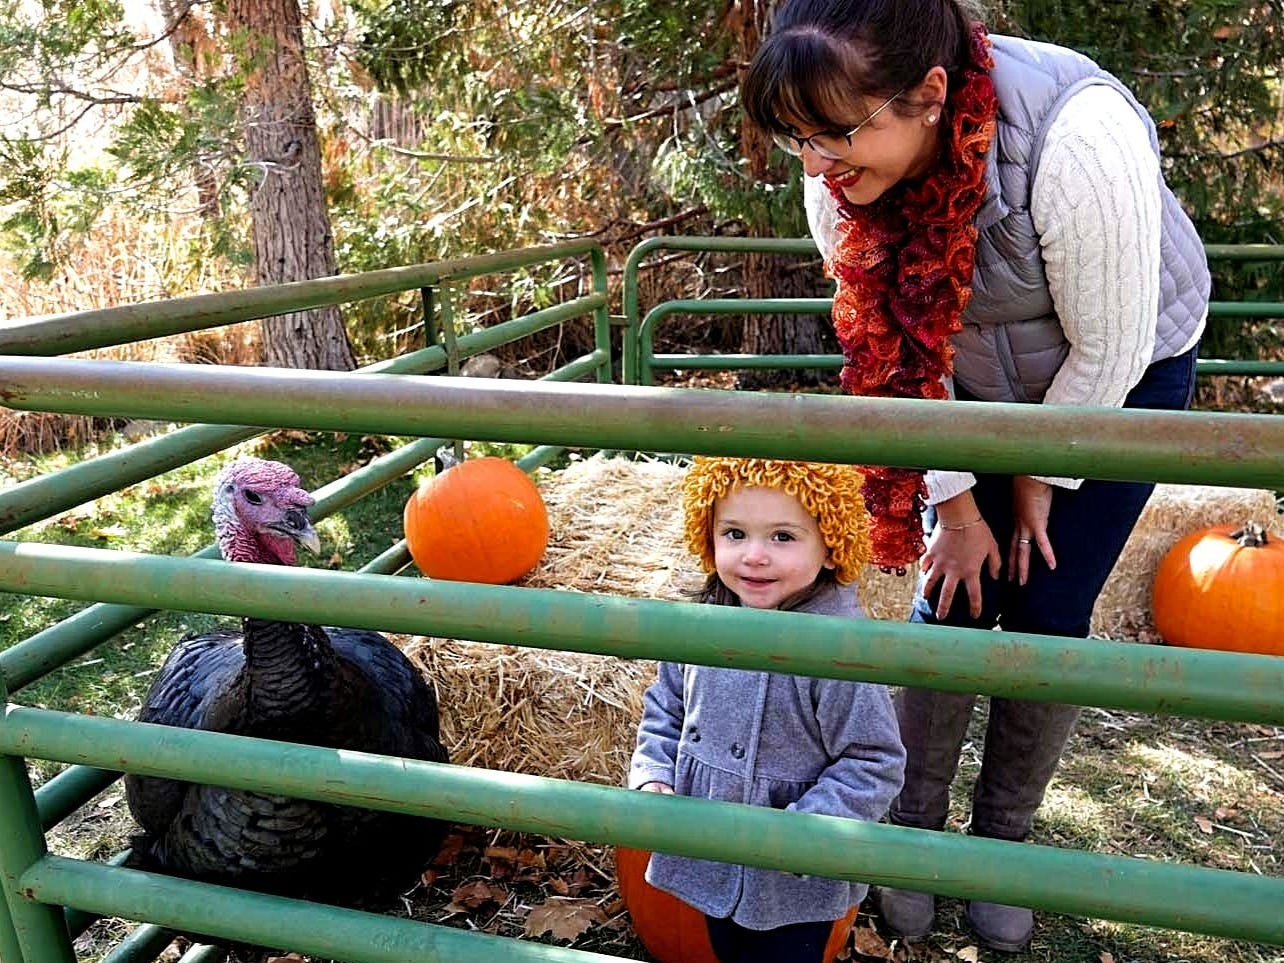 Anastassia Casey and her 2-year-old daughter, Sofia, look at a turkey during the 12th annual Meet the Turkeys event held on Nov. 10, 2018 at Rancho San Rafael in Reno.